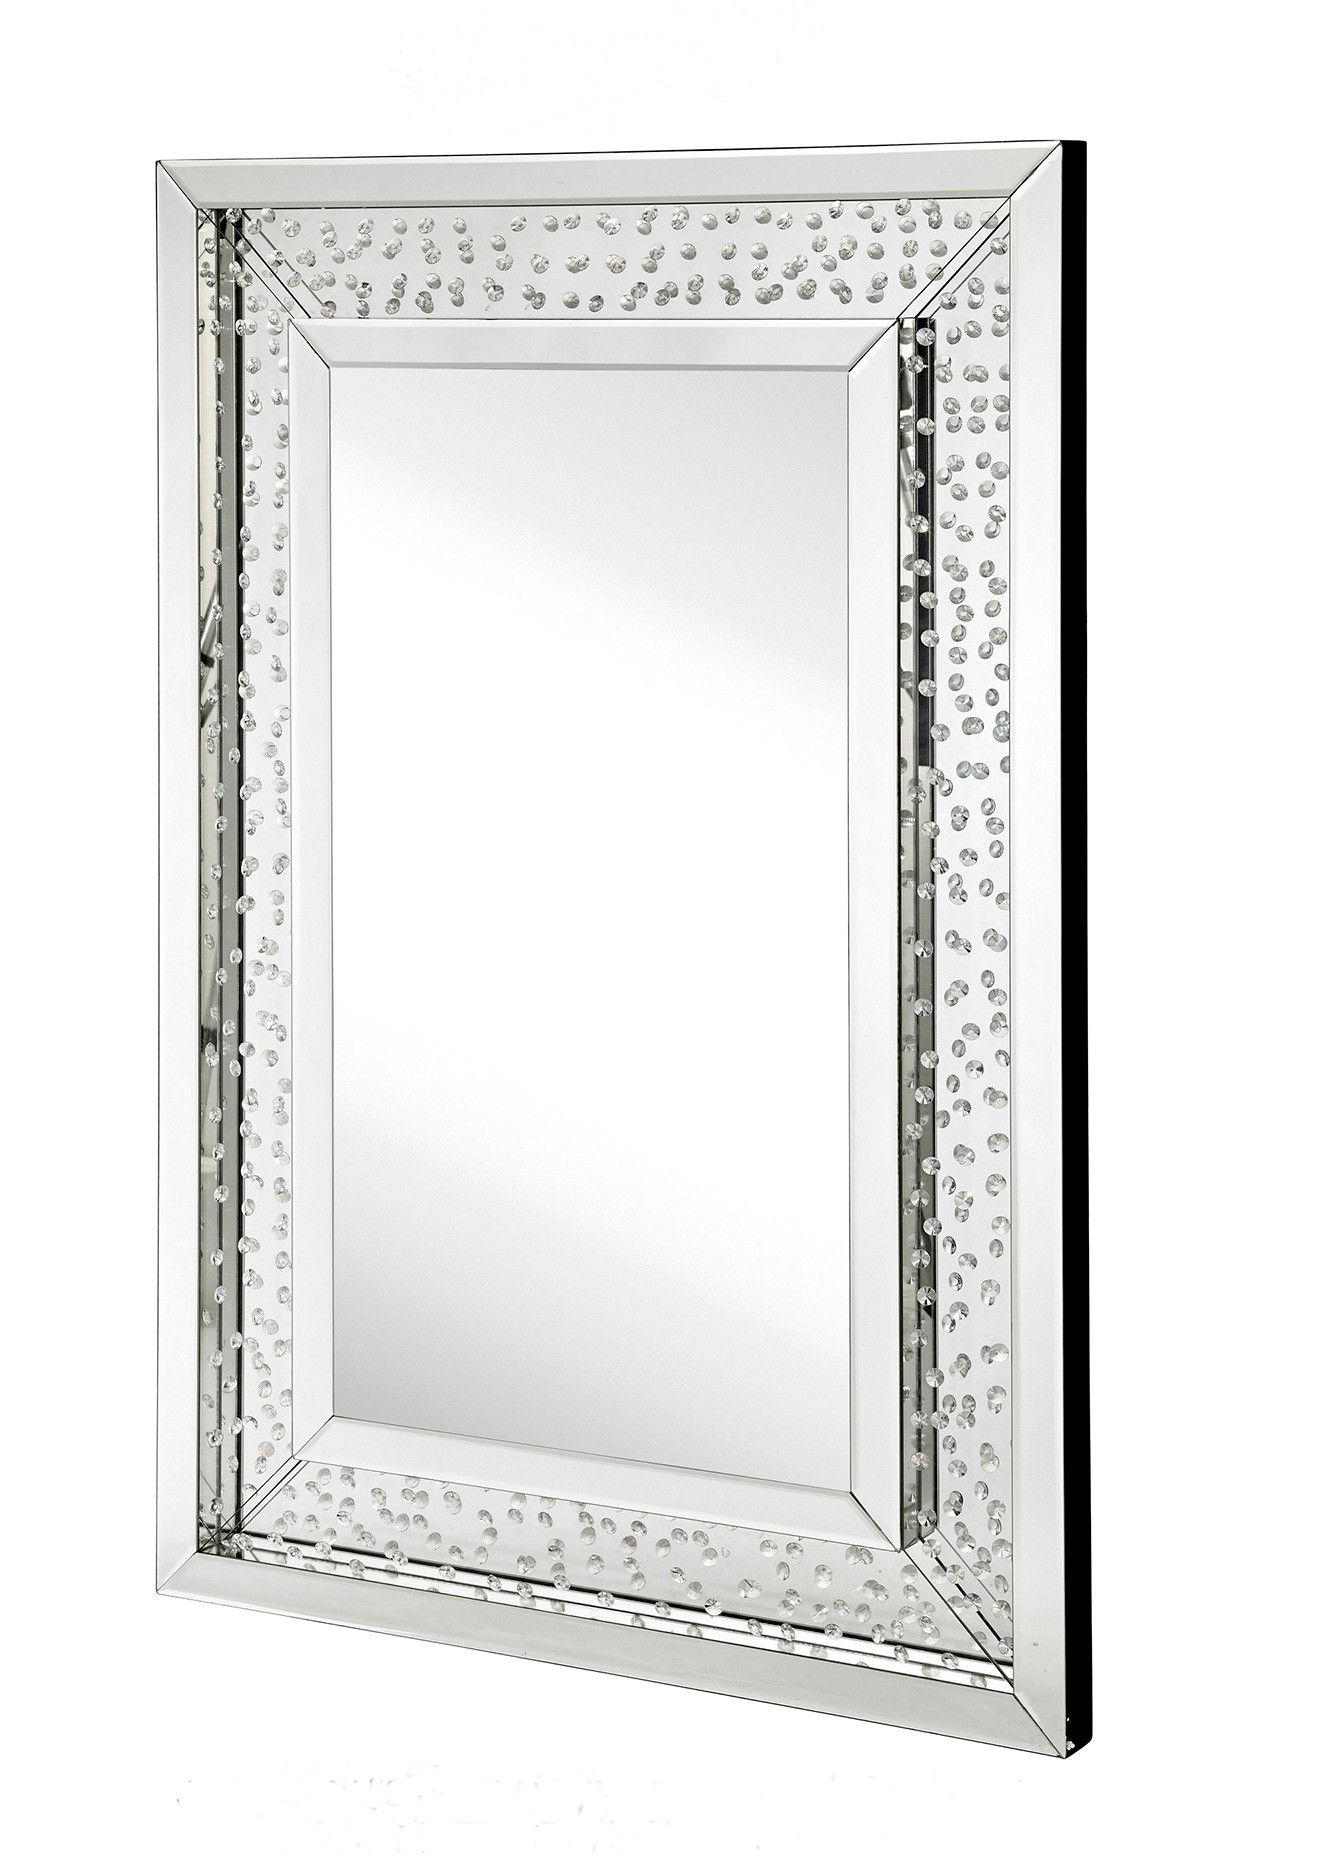 2020 Floating Crystal – Floating Crystal Rectangle Wall Mirror Pertaining To Crystal Wall Mirrors (View 4 of 20)